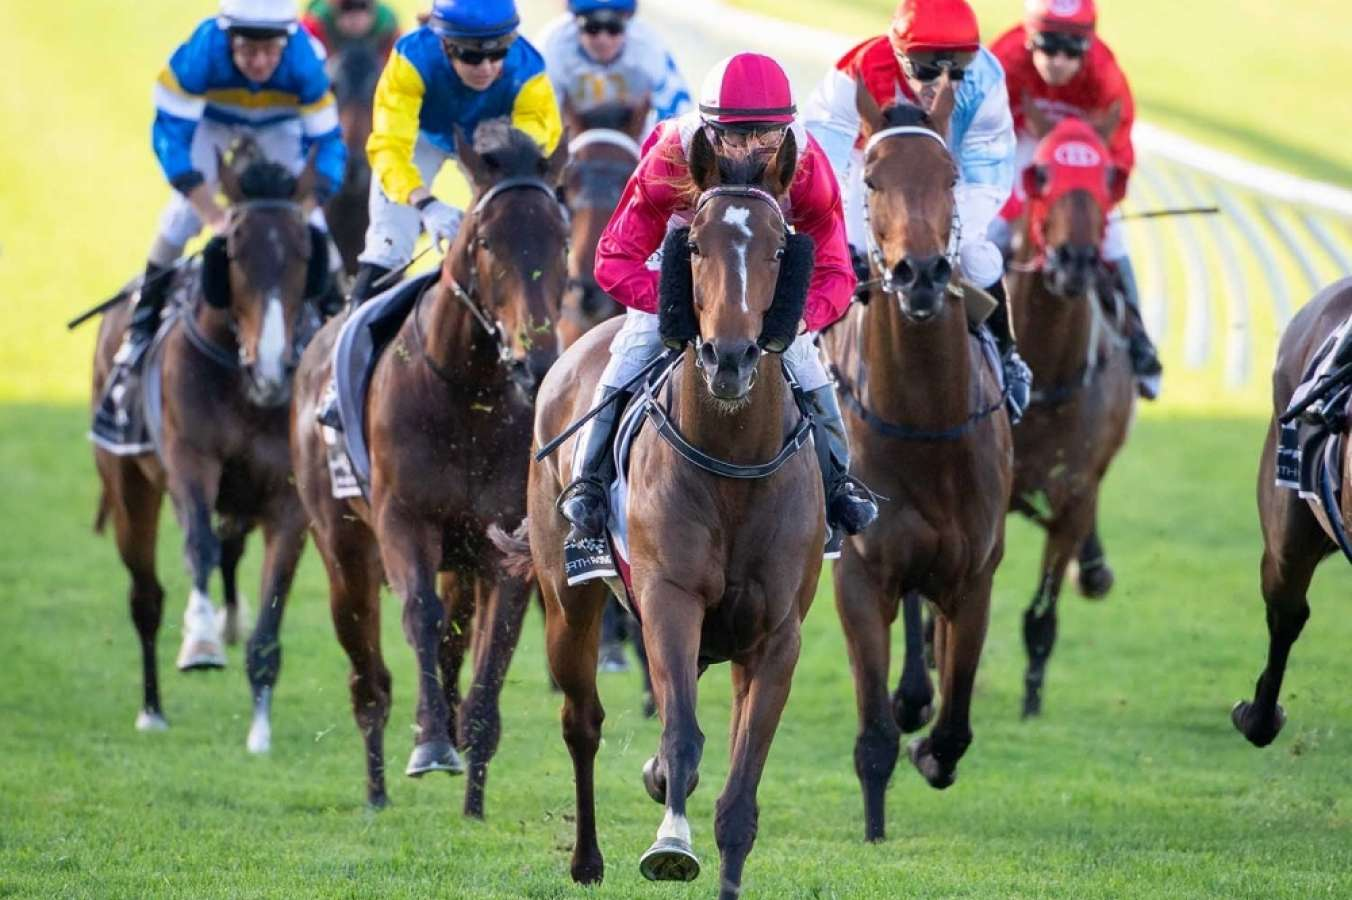 Perth racing review: William Pike stars with five-timer - Punters